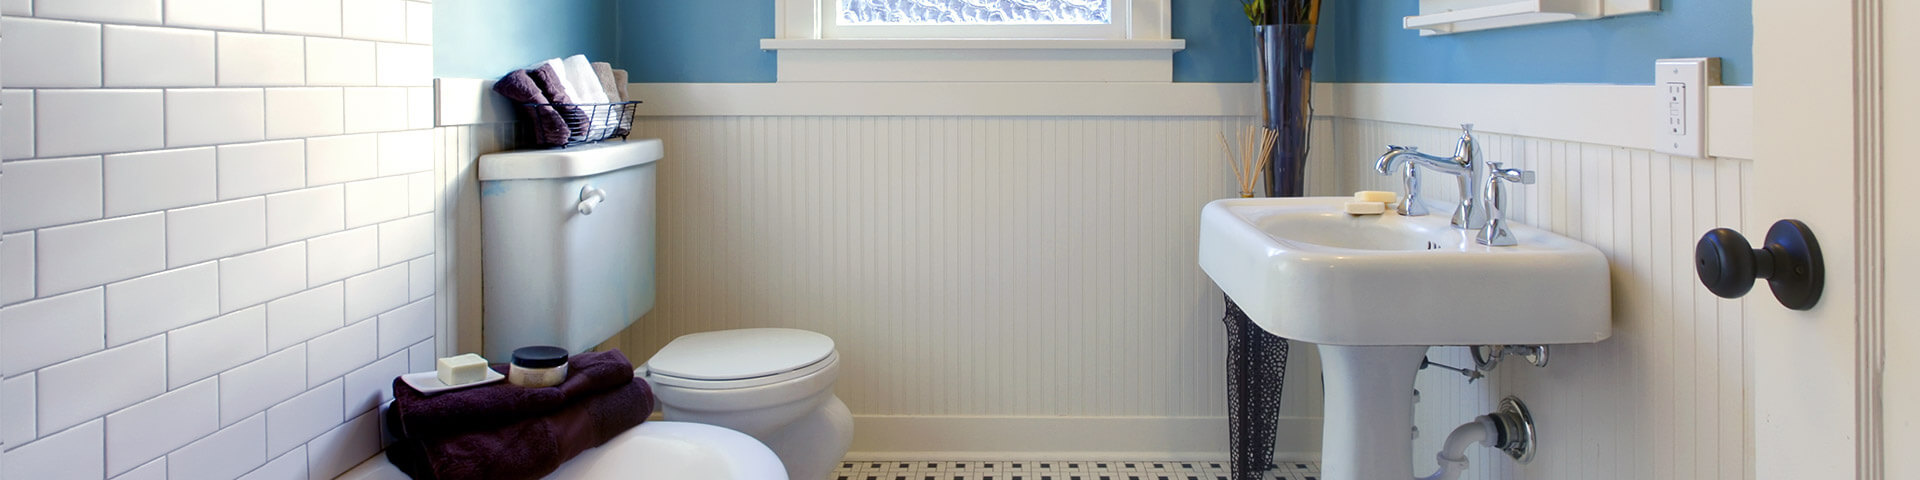 Pittsburgh plumbing services